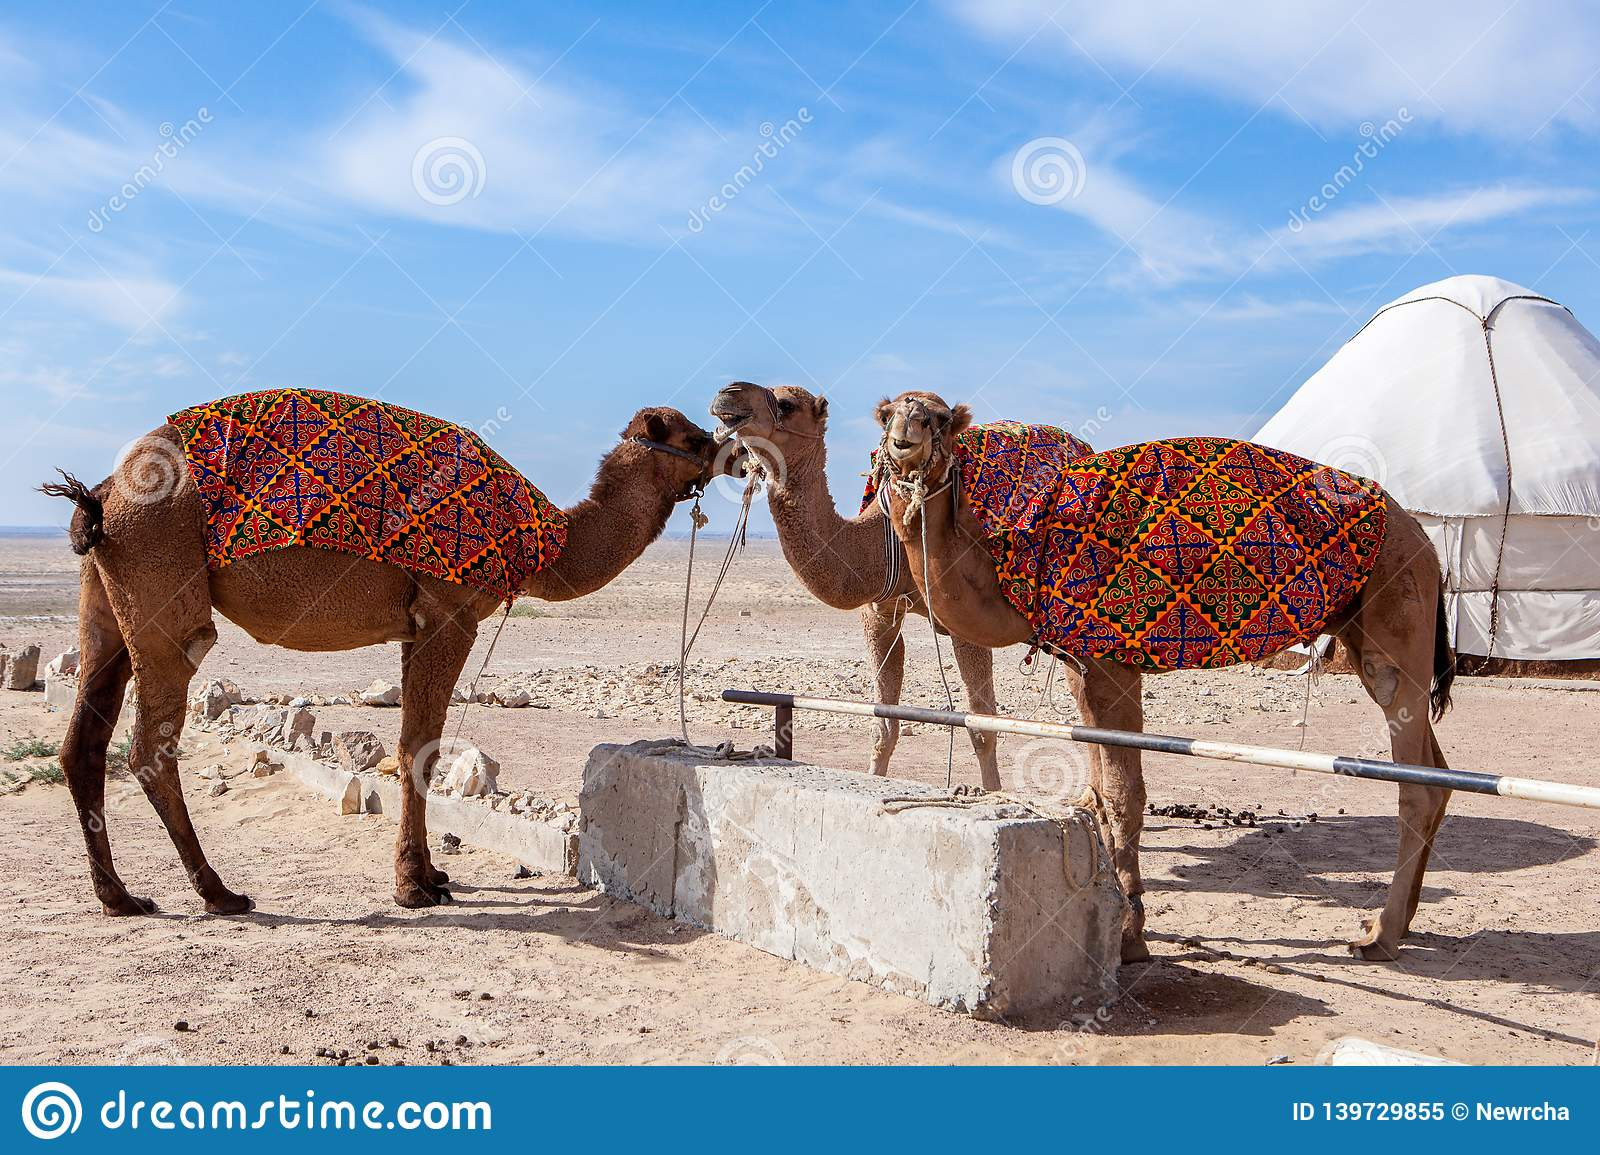 Camels Camelus in camp